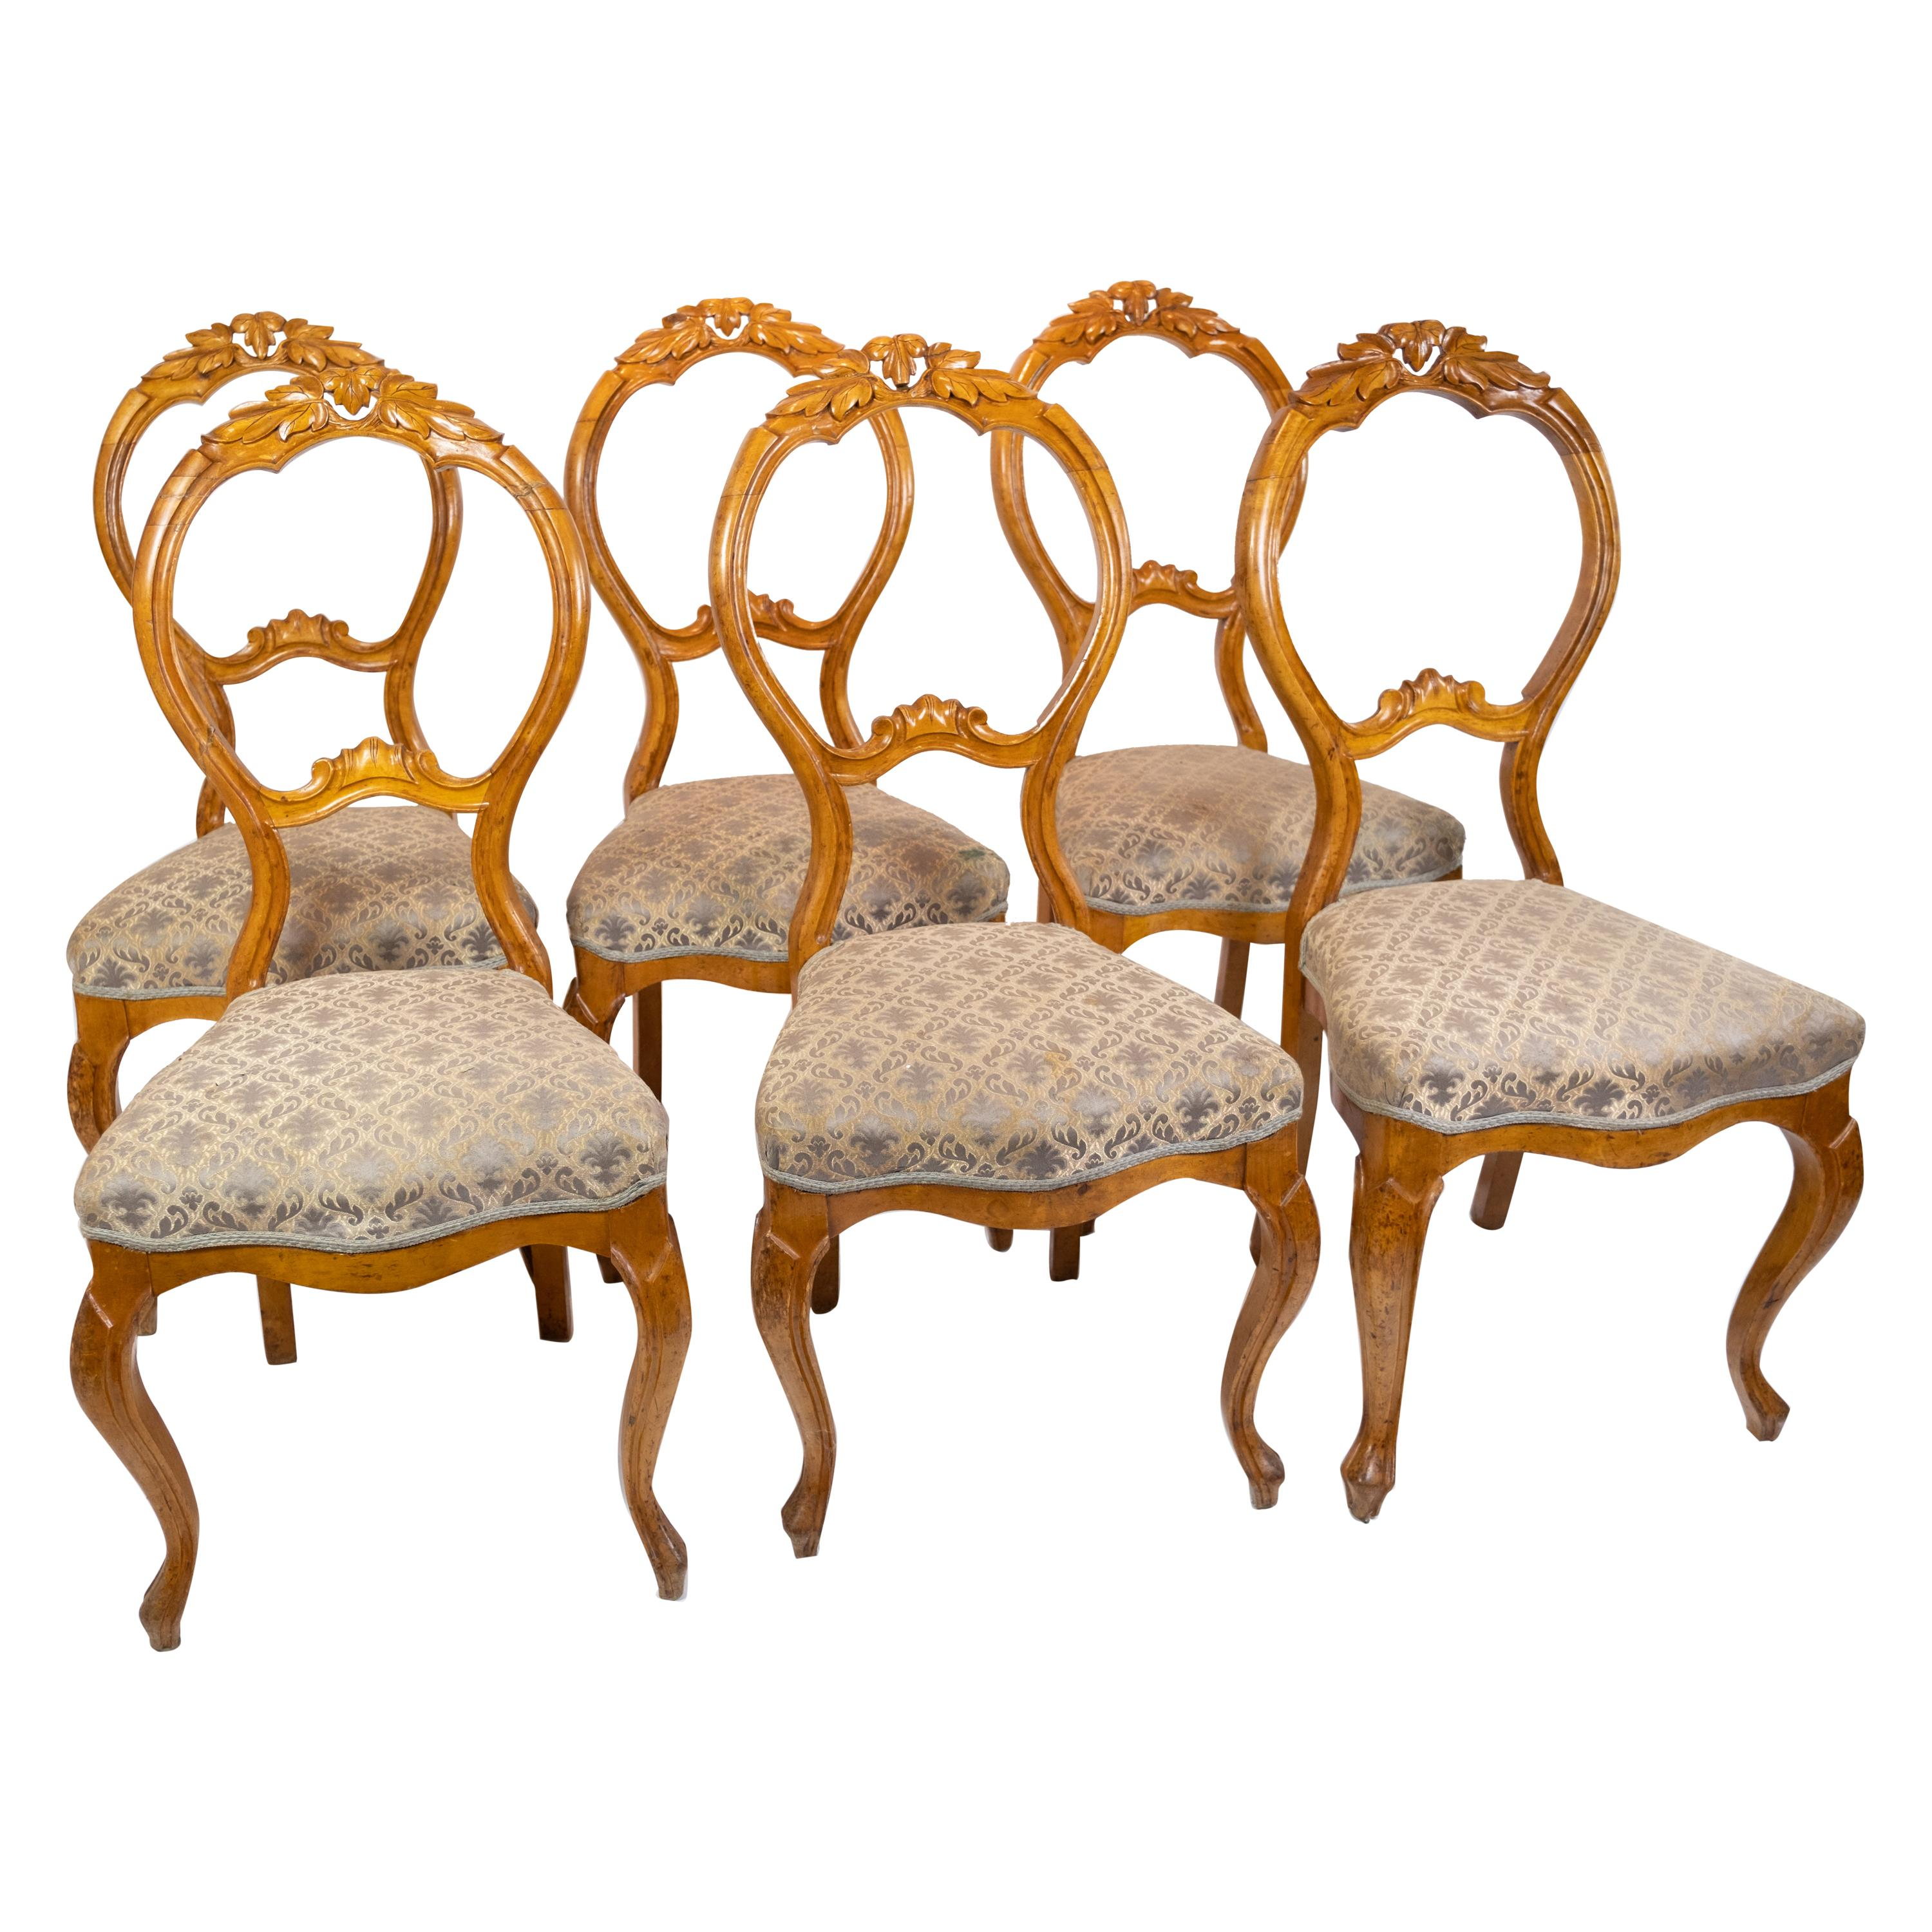 Set of Six Rococo Dining Room Chairs of Light Mahogany, 1760s